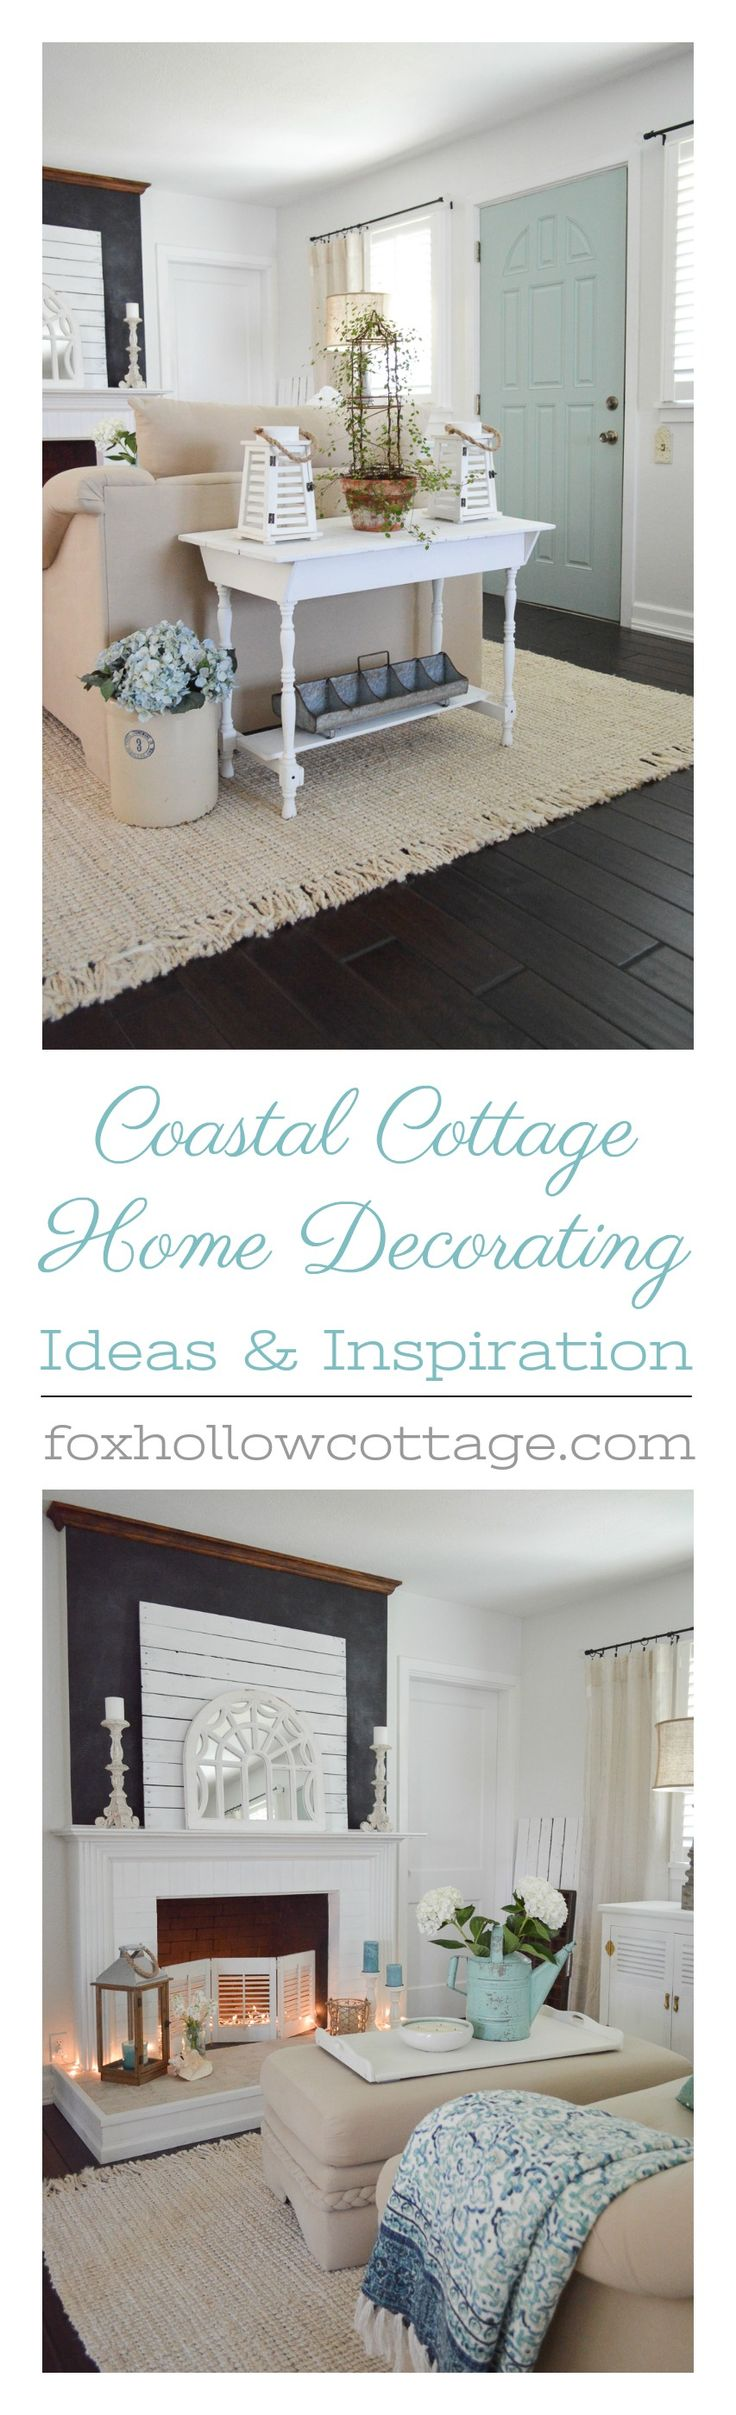 Category home decor page 7 - Home Decorating Ideas With Coastal Cottage Farmhouse Style And Vintage Touches Www Foxhollowcottage